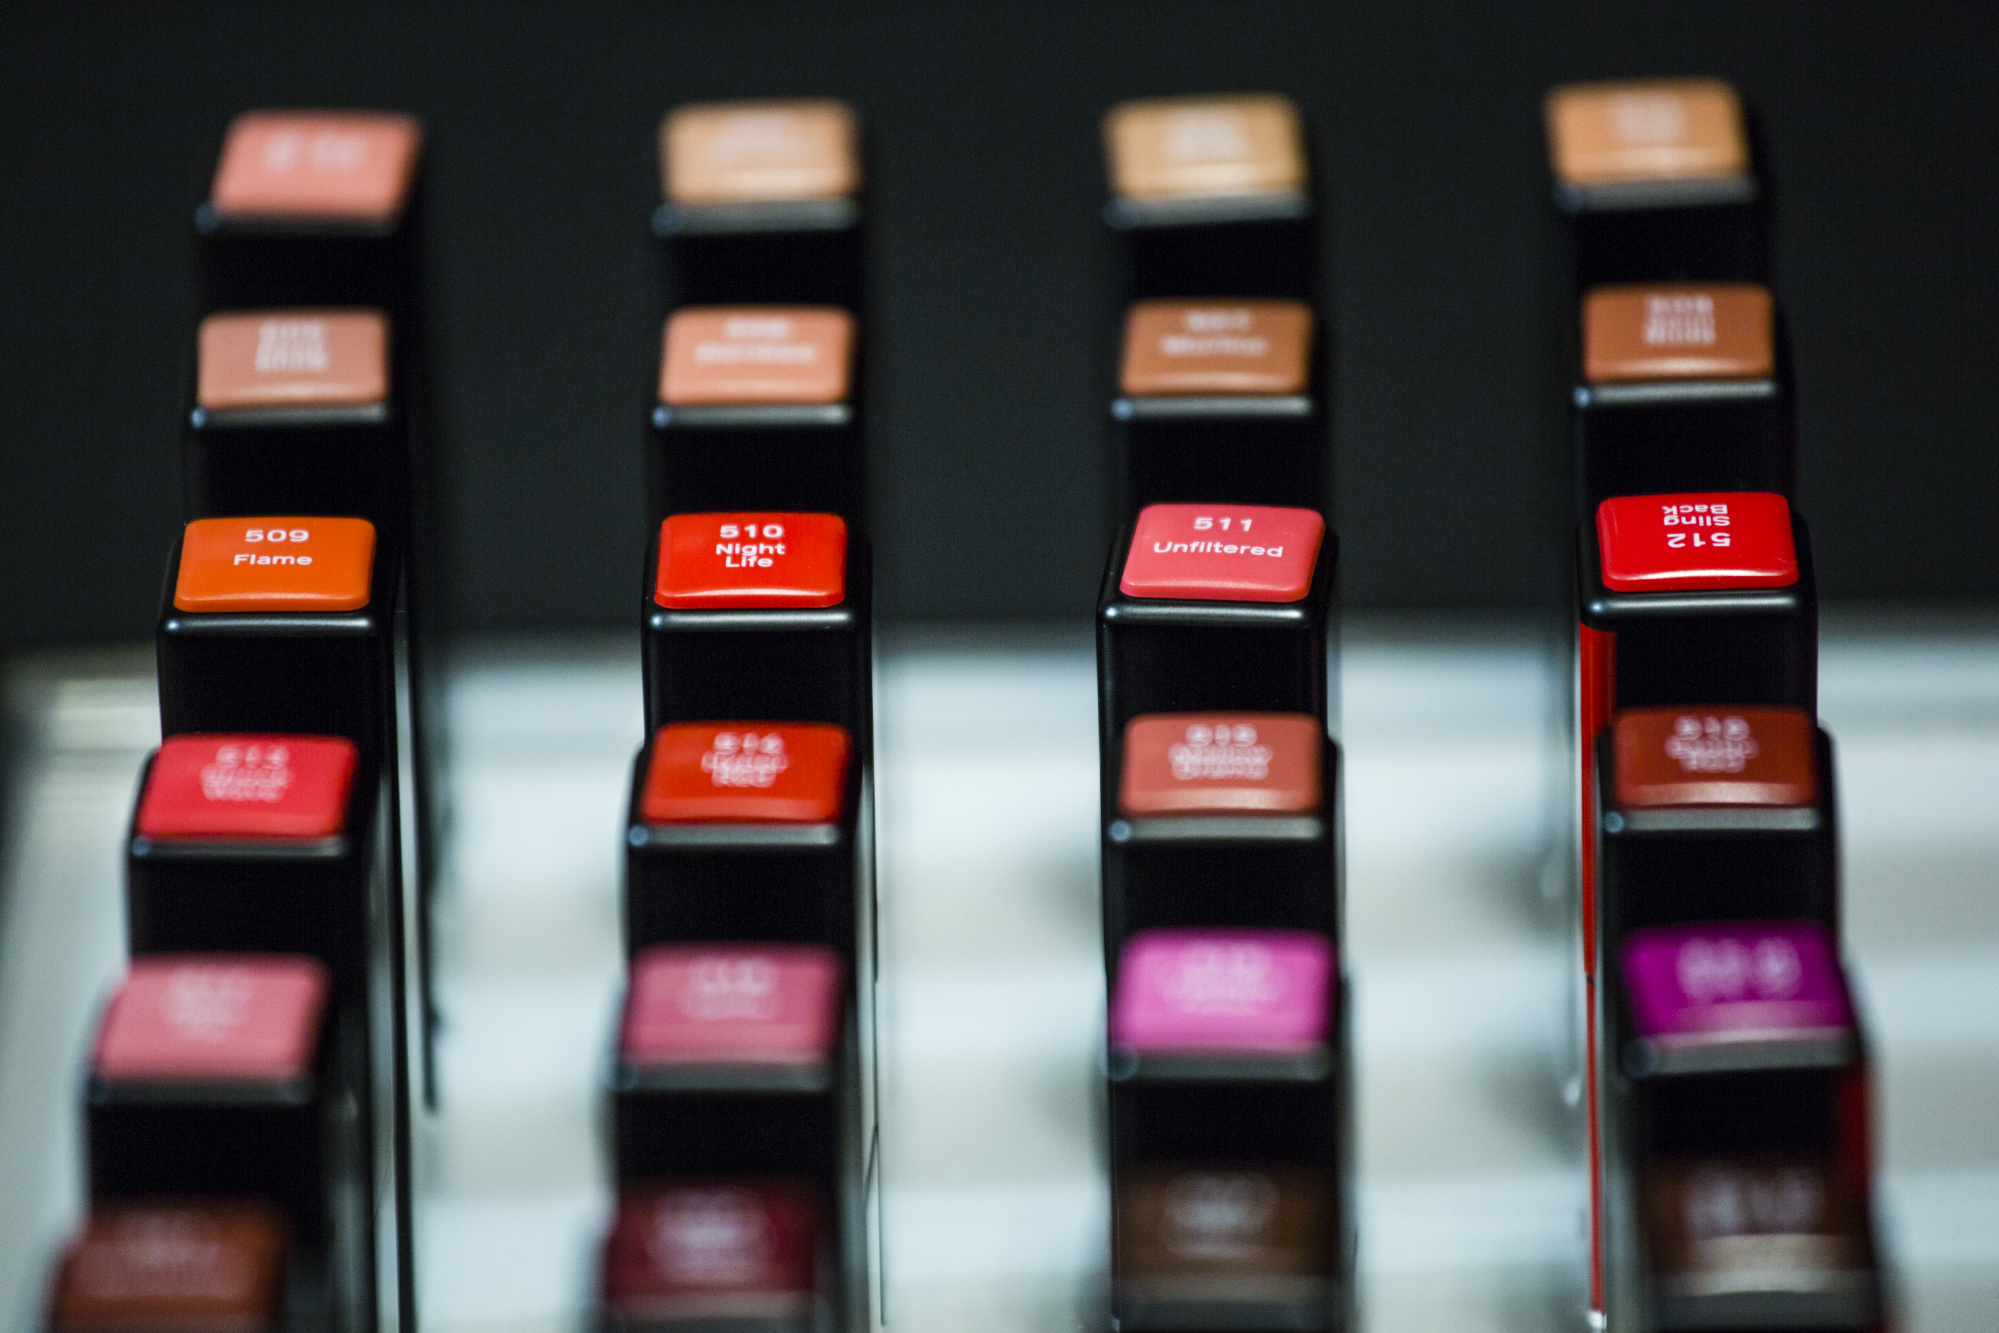 Cosmetics Company Shiseido Gets a Makeover to Target Gen Y